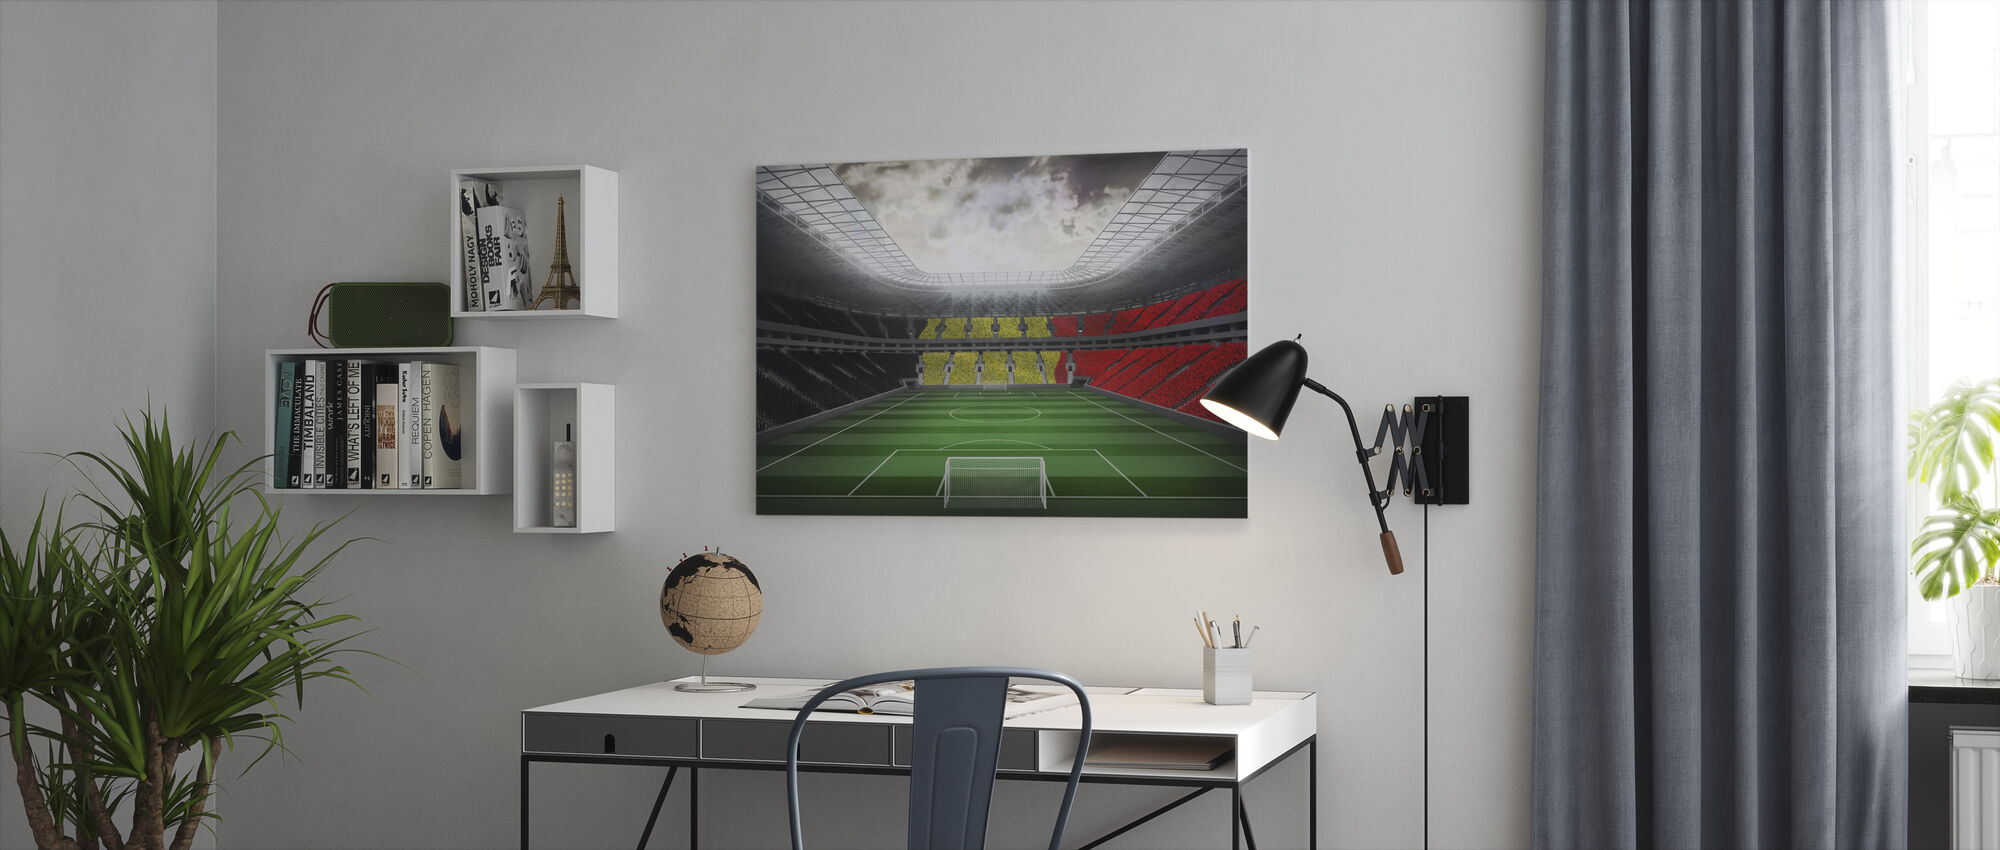 Giant Soccer Stadium - Canvas print - Office